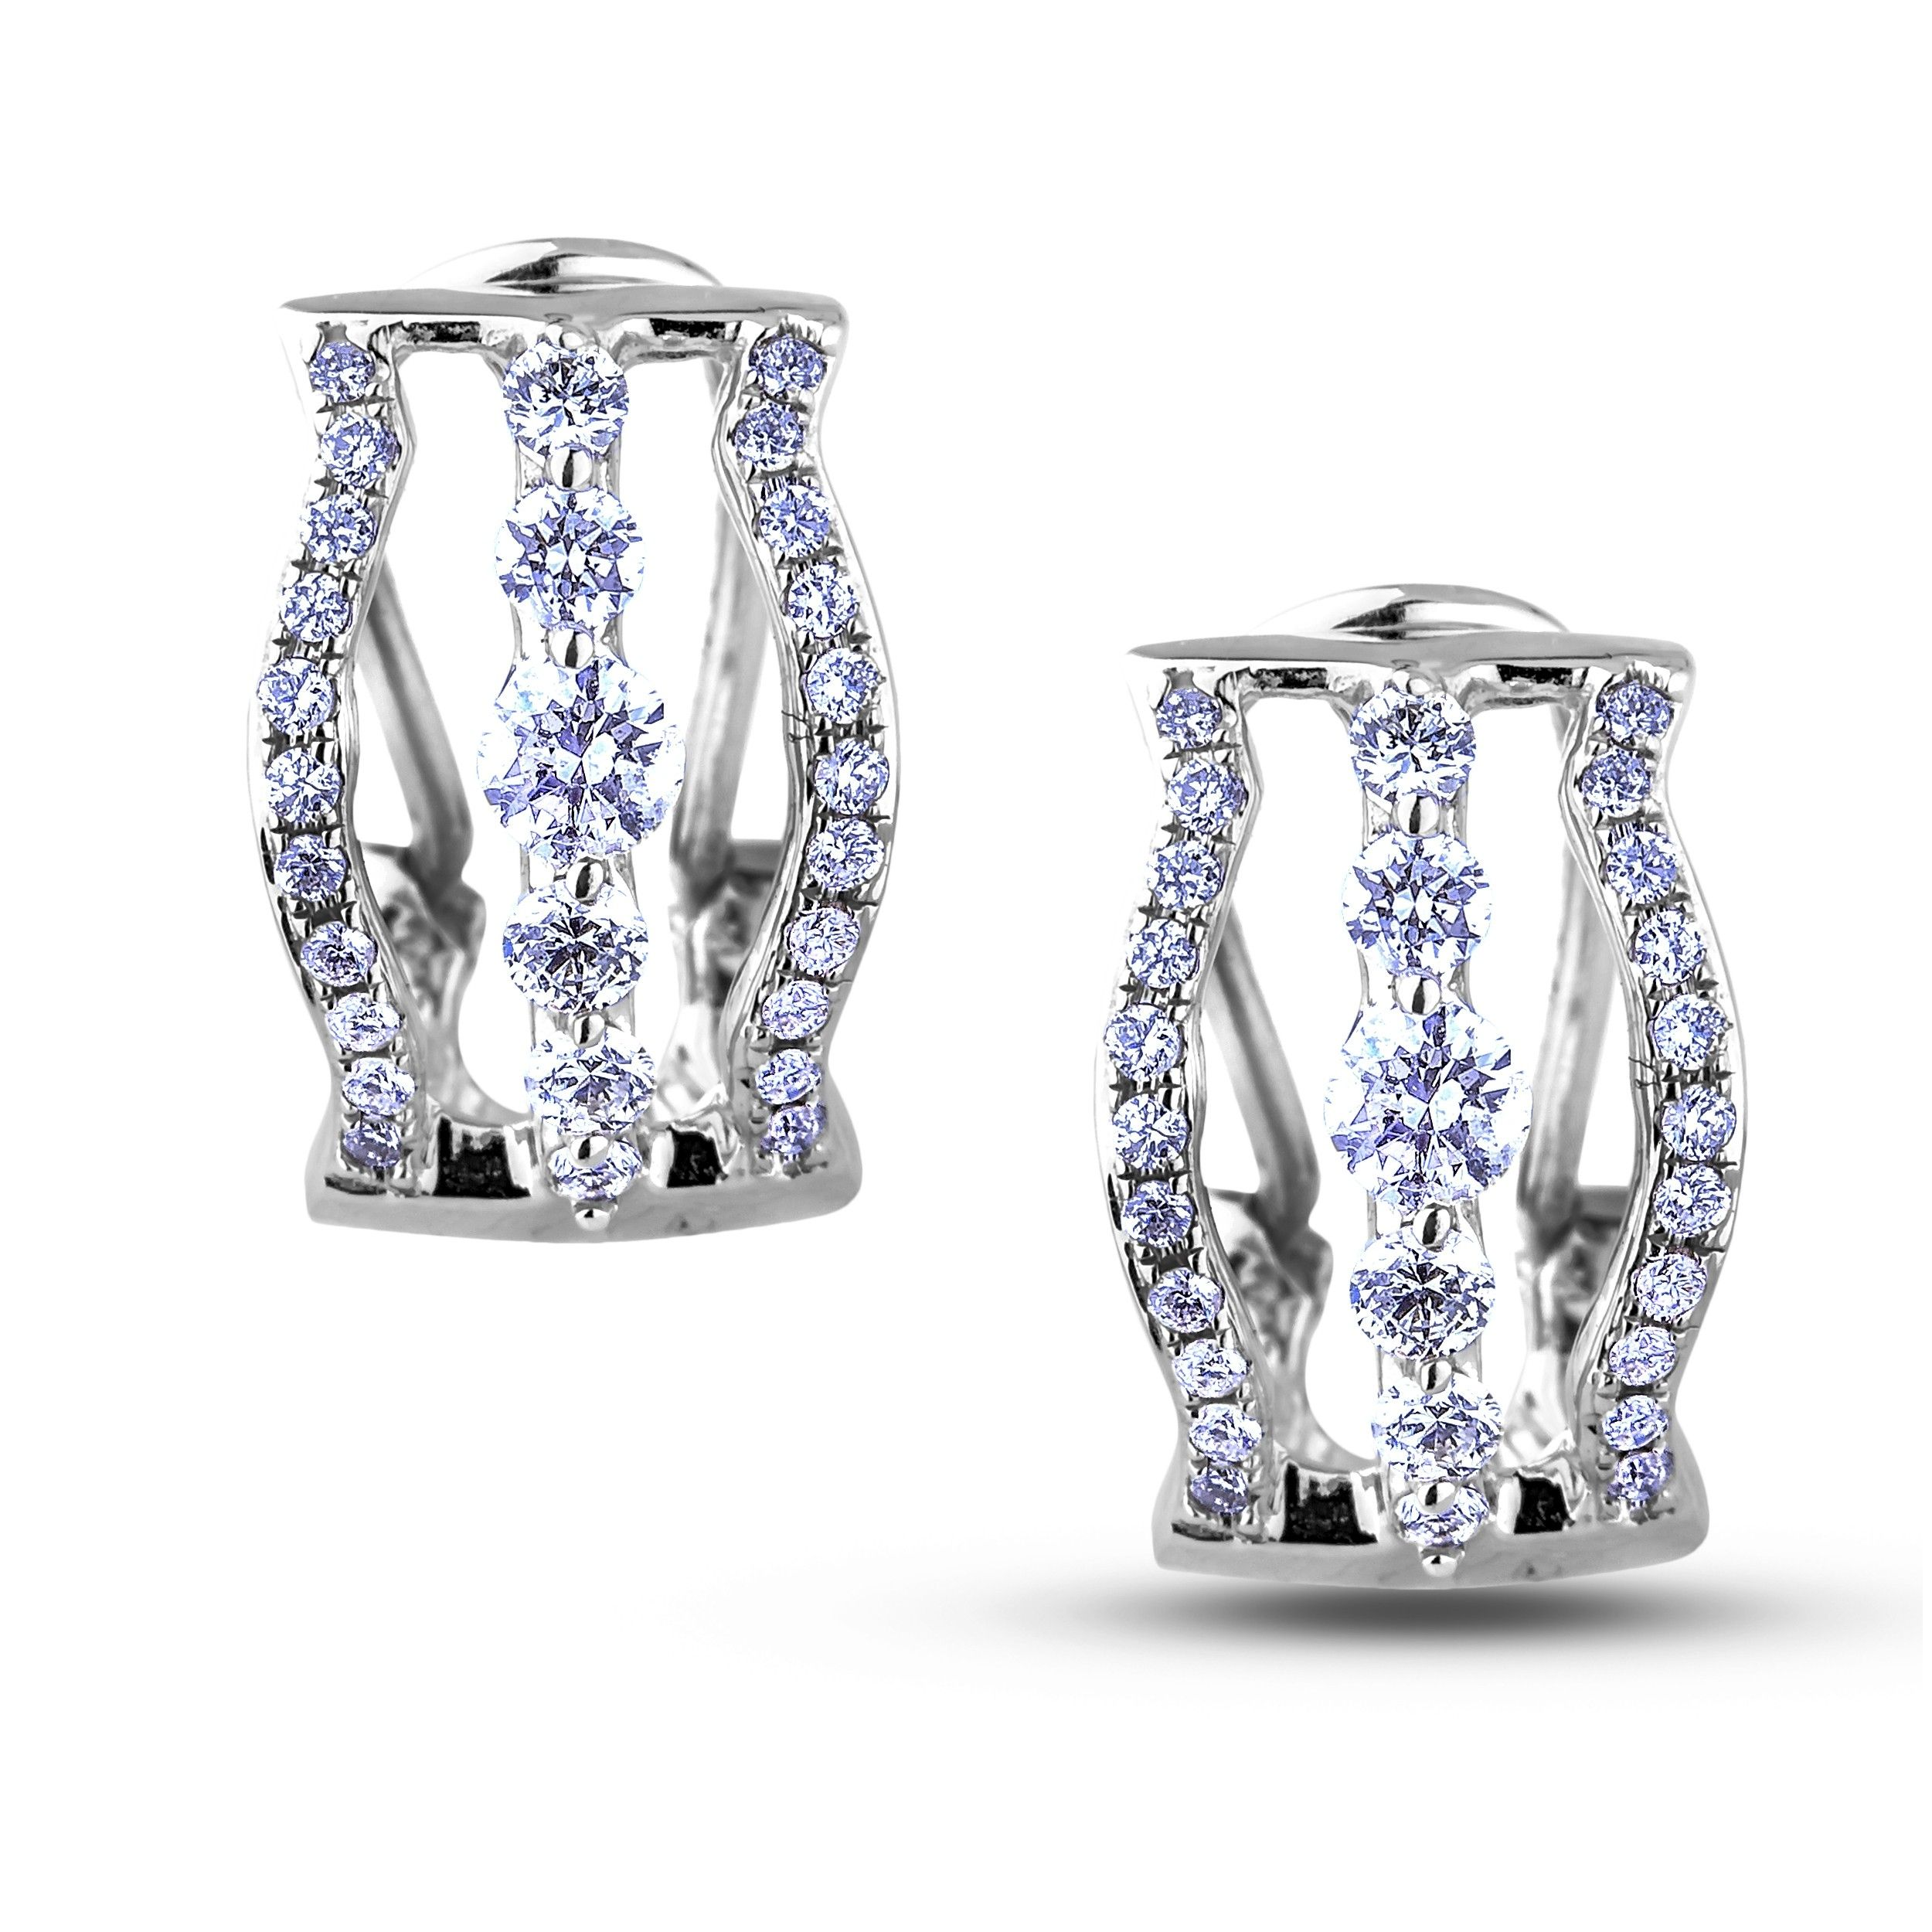 Canadian Diamond Hoop Earrings White Gold Featuring 2 0 20 Carat Total Weight Round